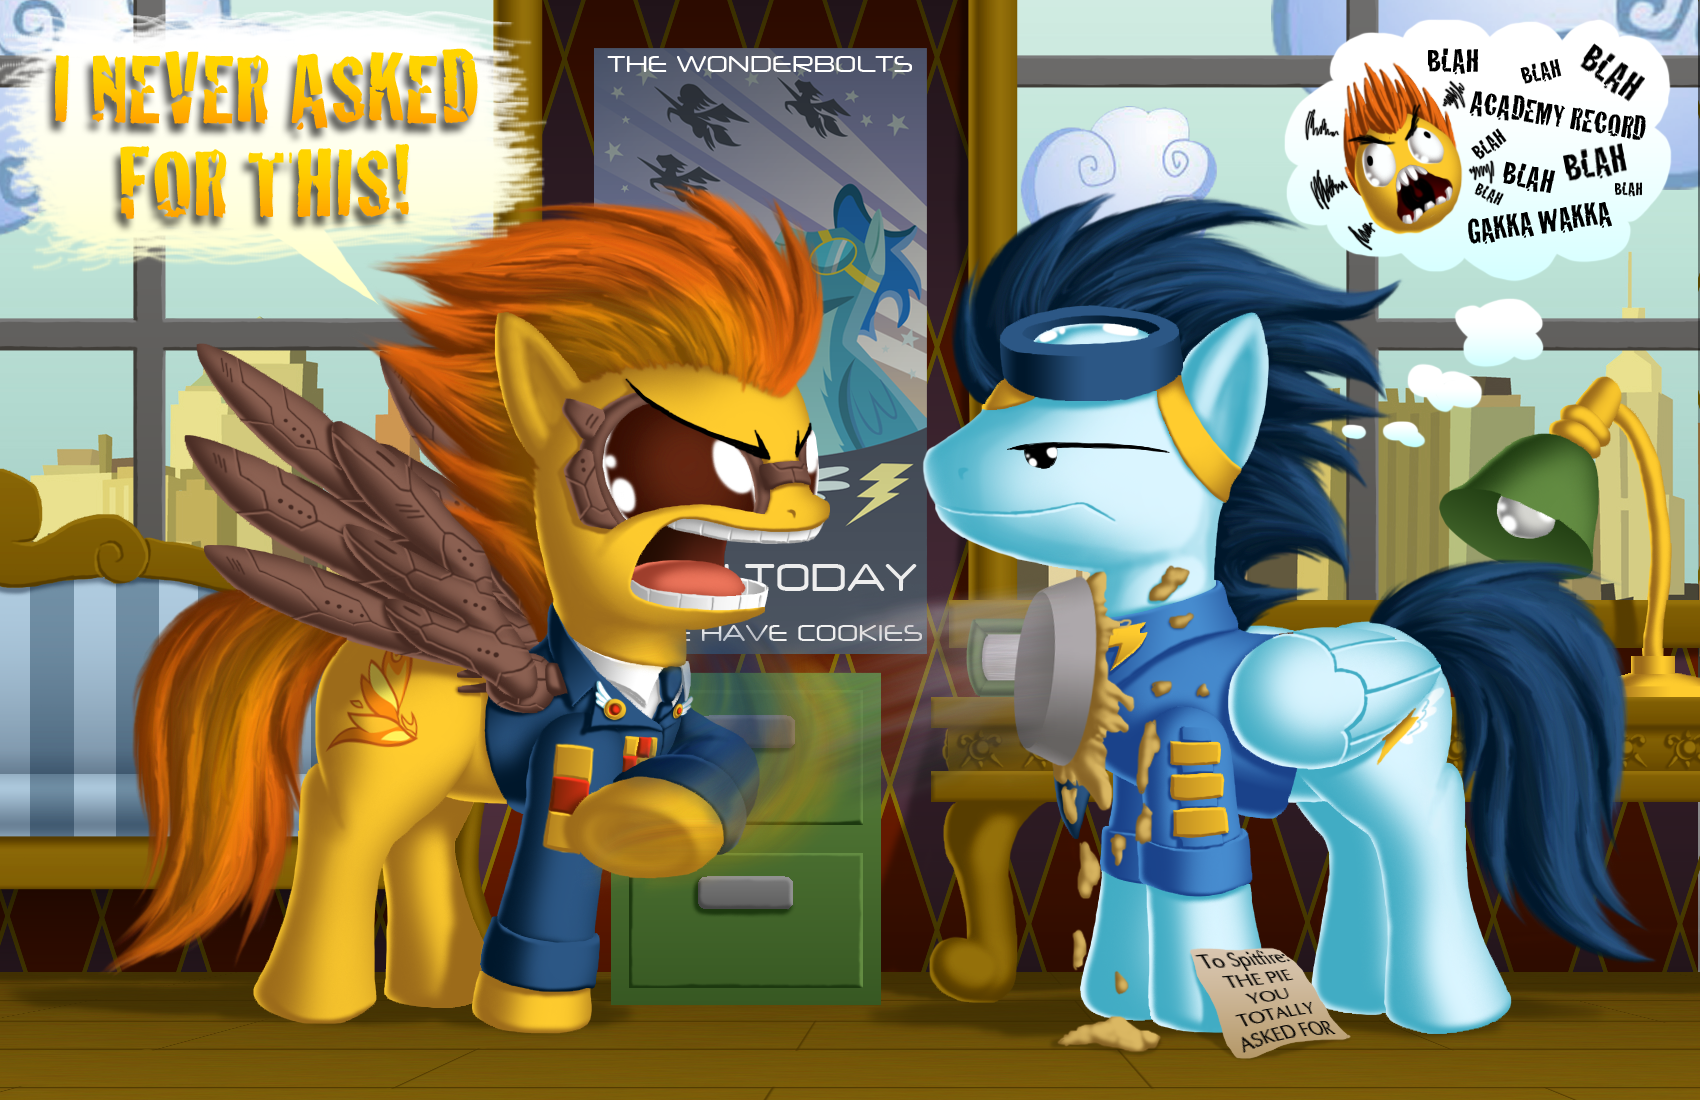 A Day In The Life Of A Wonderbolt My Little Pony